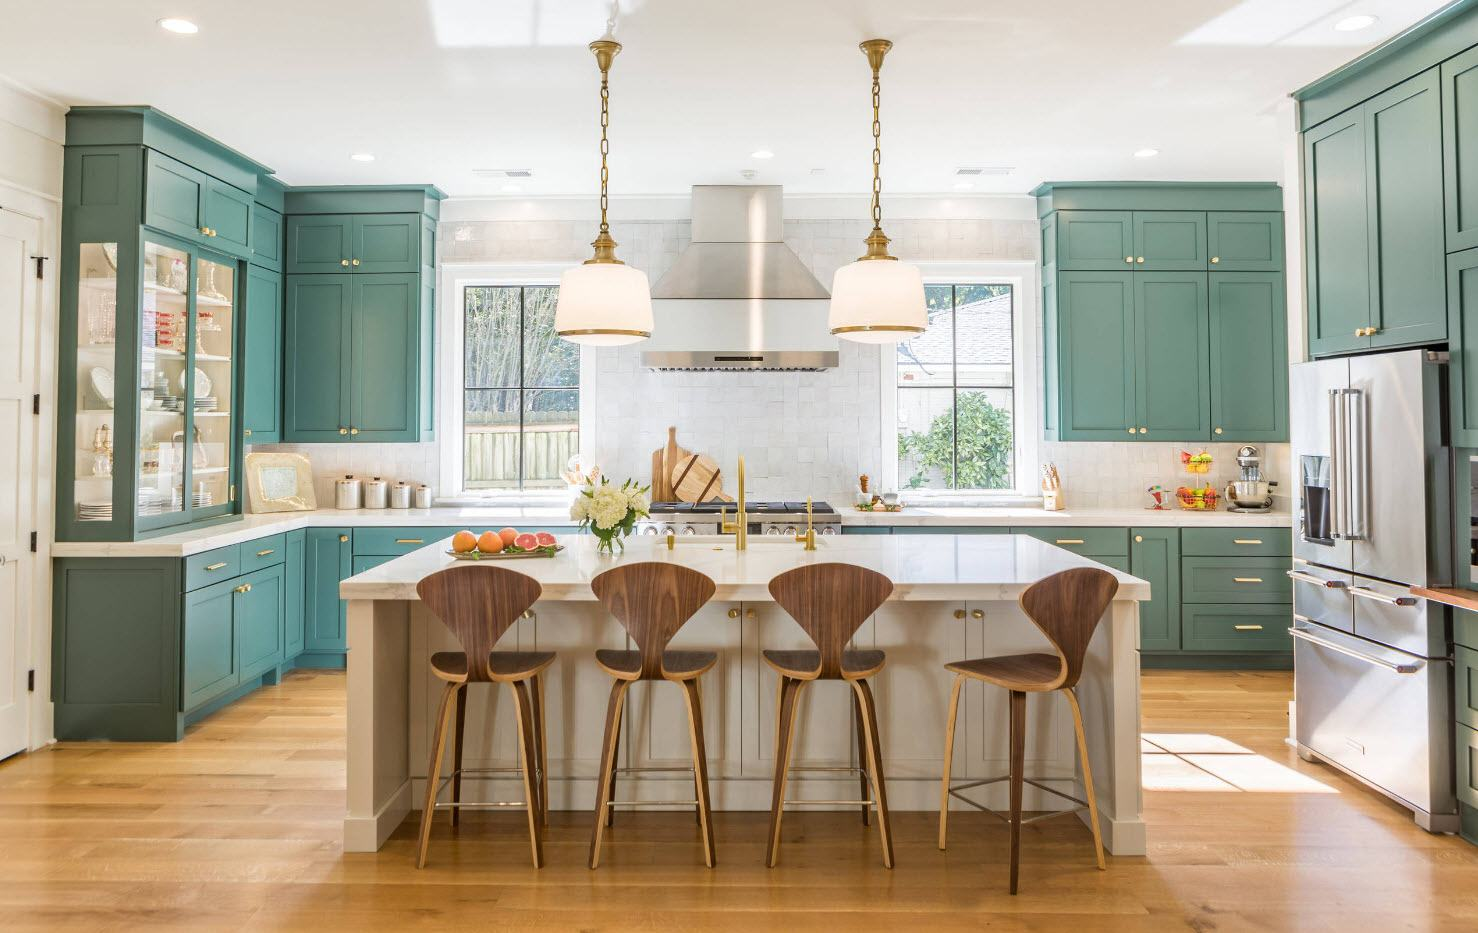 160 Square Feet Kitchen Design Ideas. Turquoise designed cabinets and low tier of furniture in Classic space